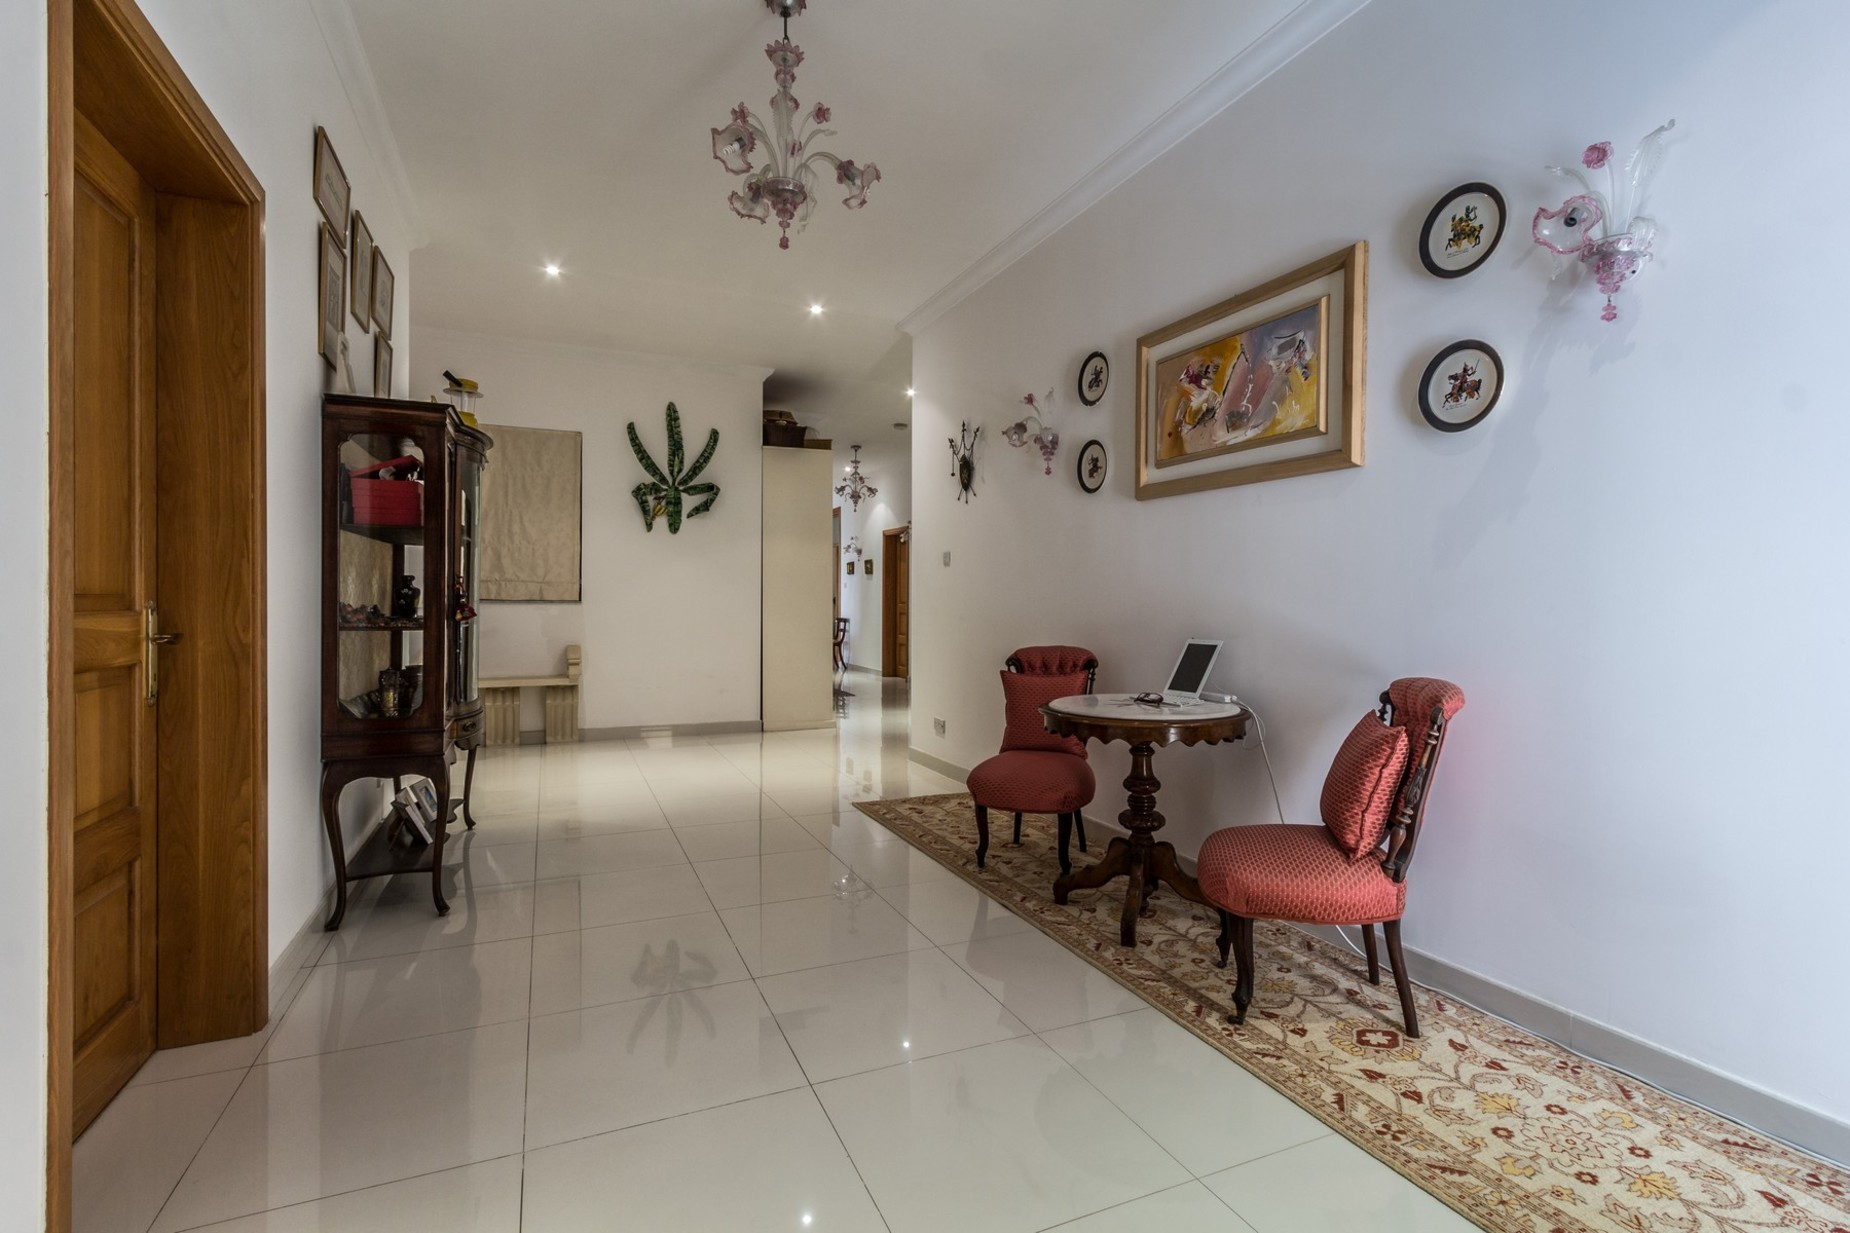 5 bed Apartment For Sale in Sliema, Sliema - thumb 9